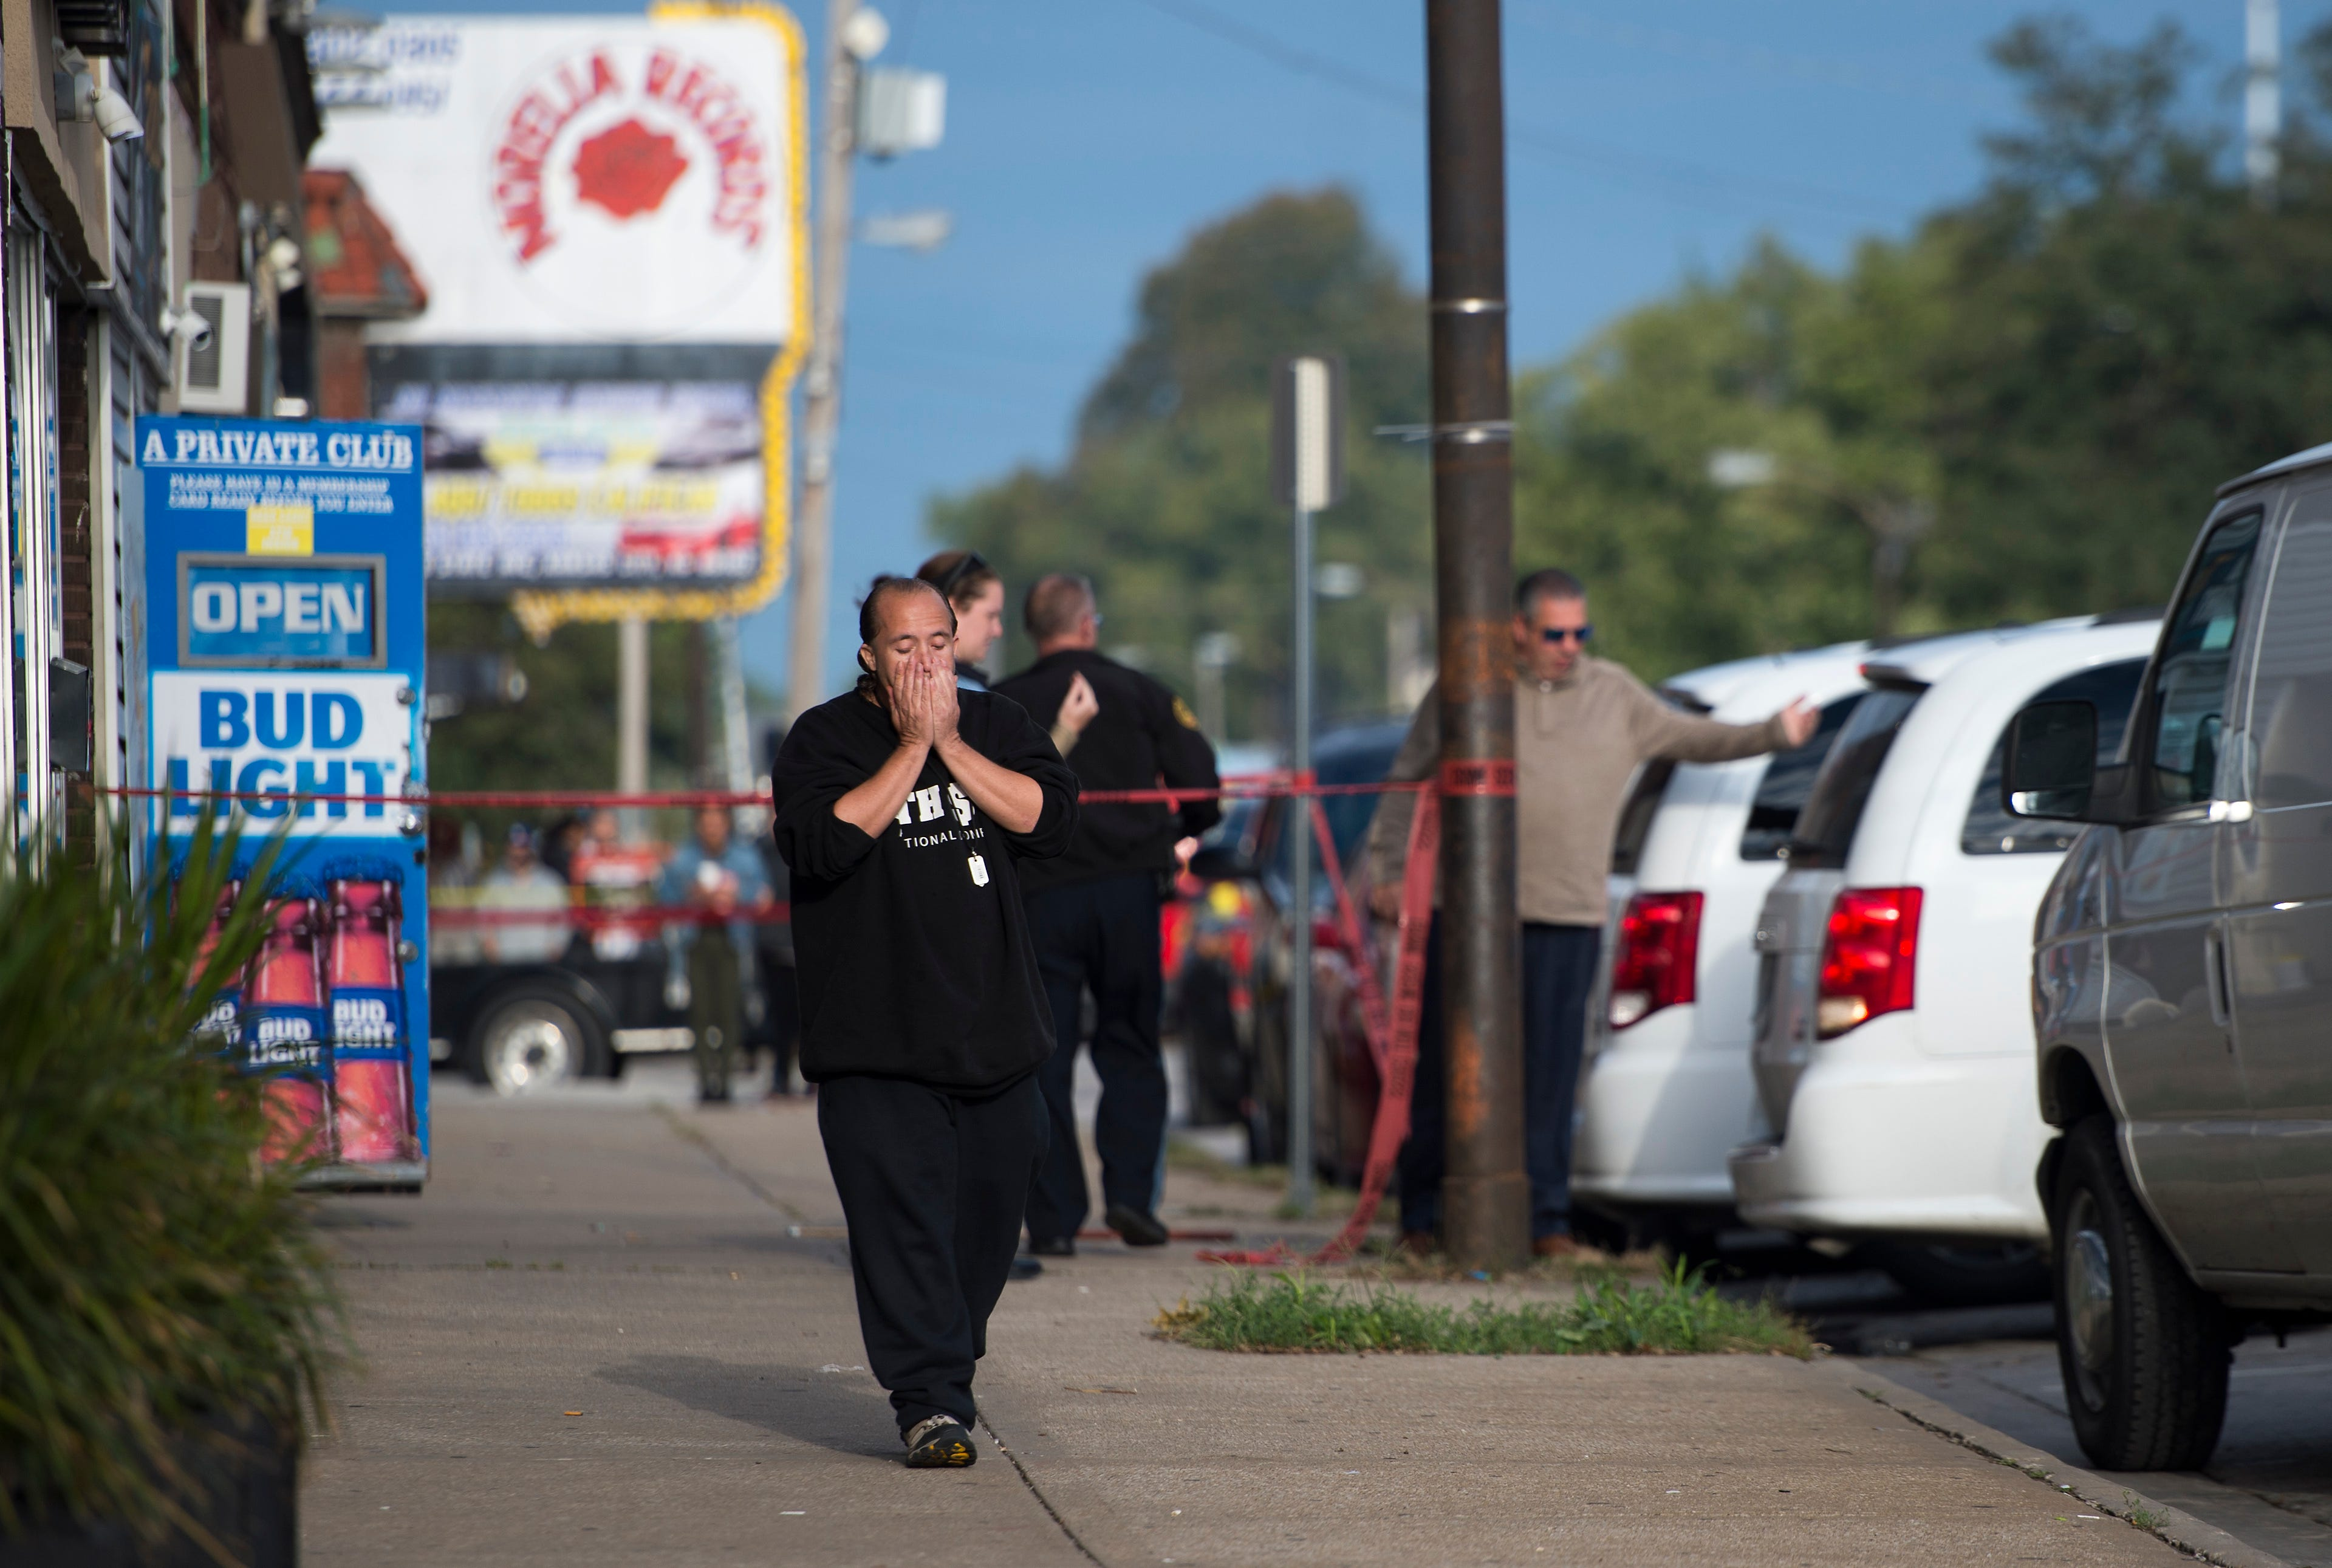 Breaking news: One suspect nabbed, one sought in shooting rampage that killed 4, wounded 5 in Kansas bar